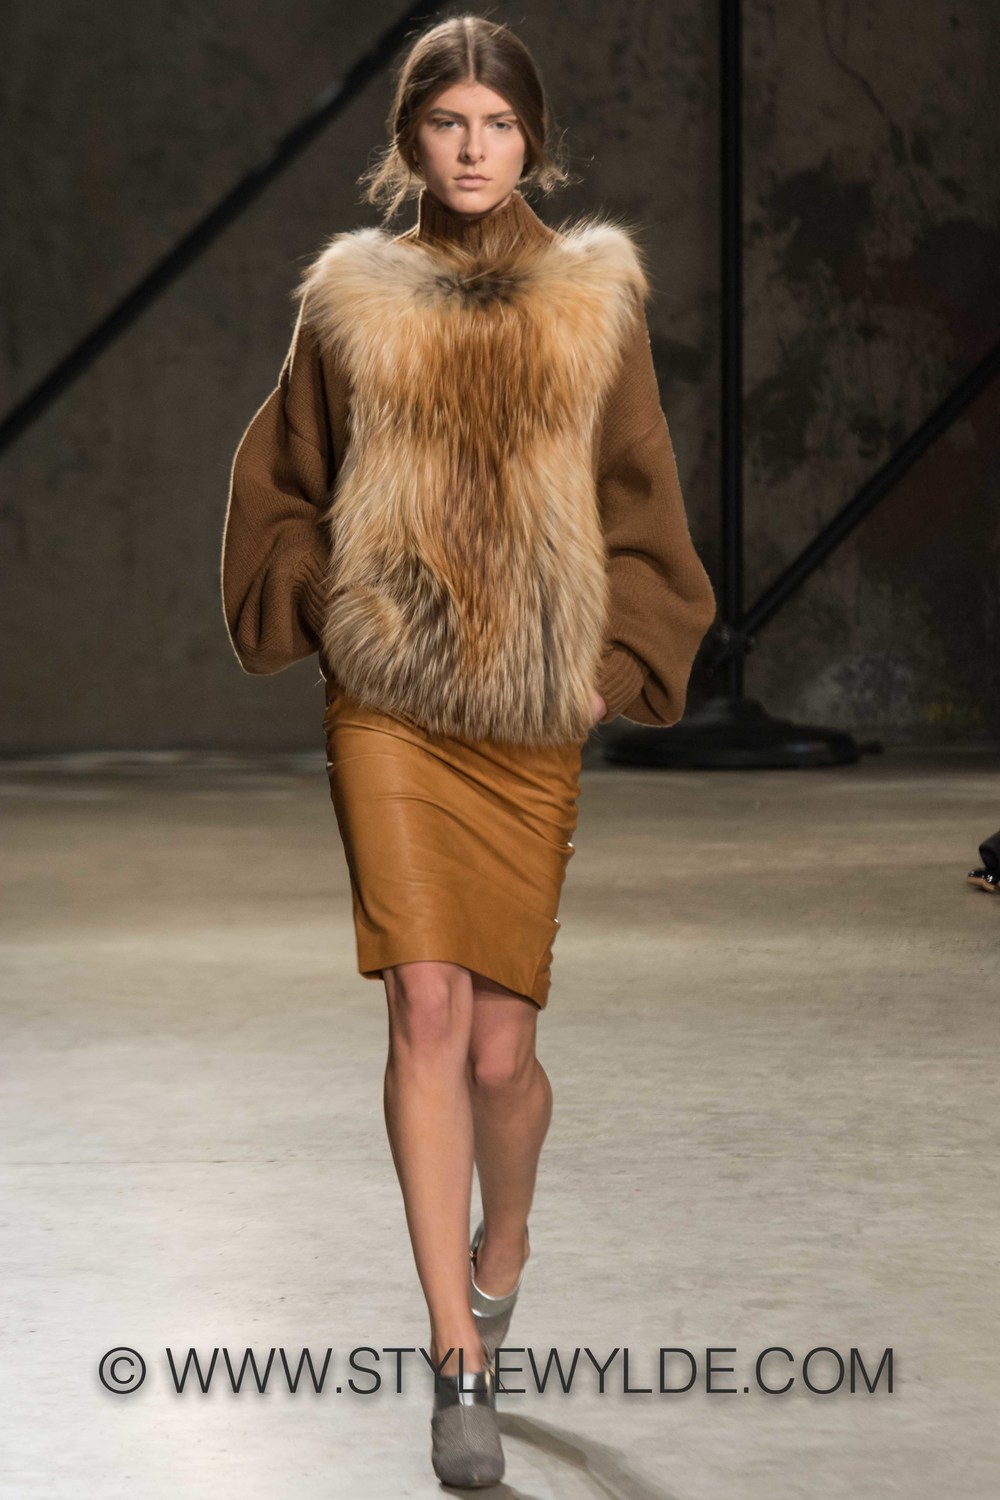 stylewylde_sally_lapointe_fw_2014-11.jpg